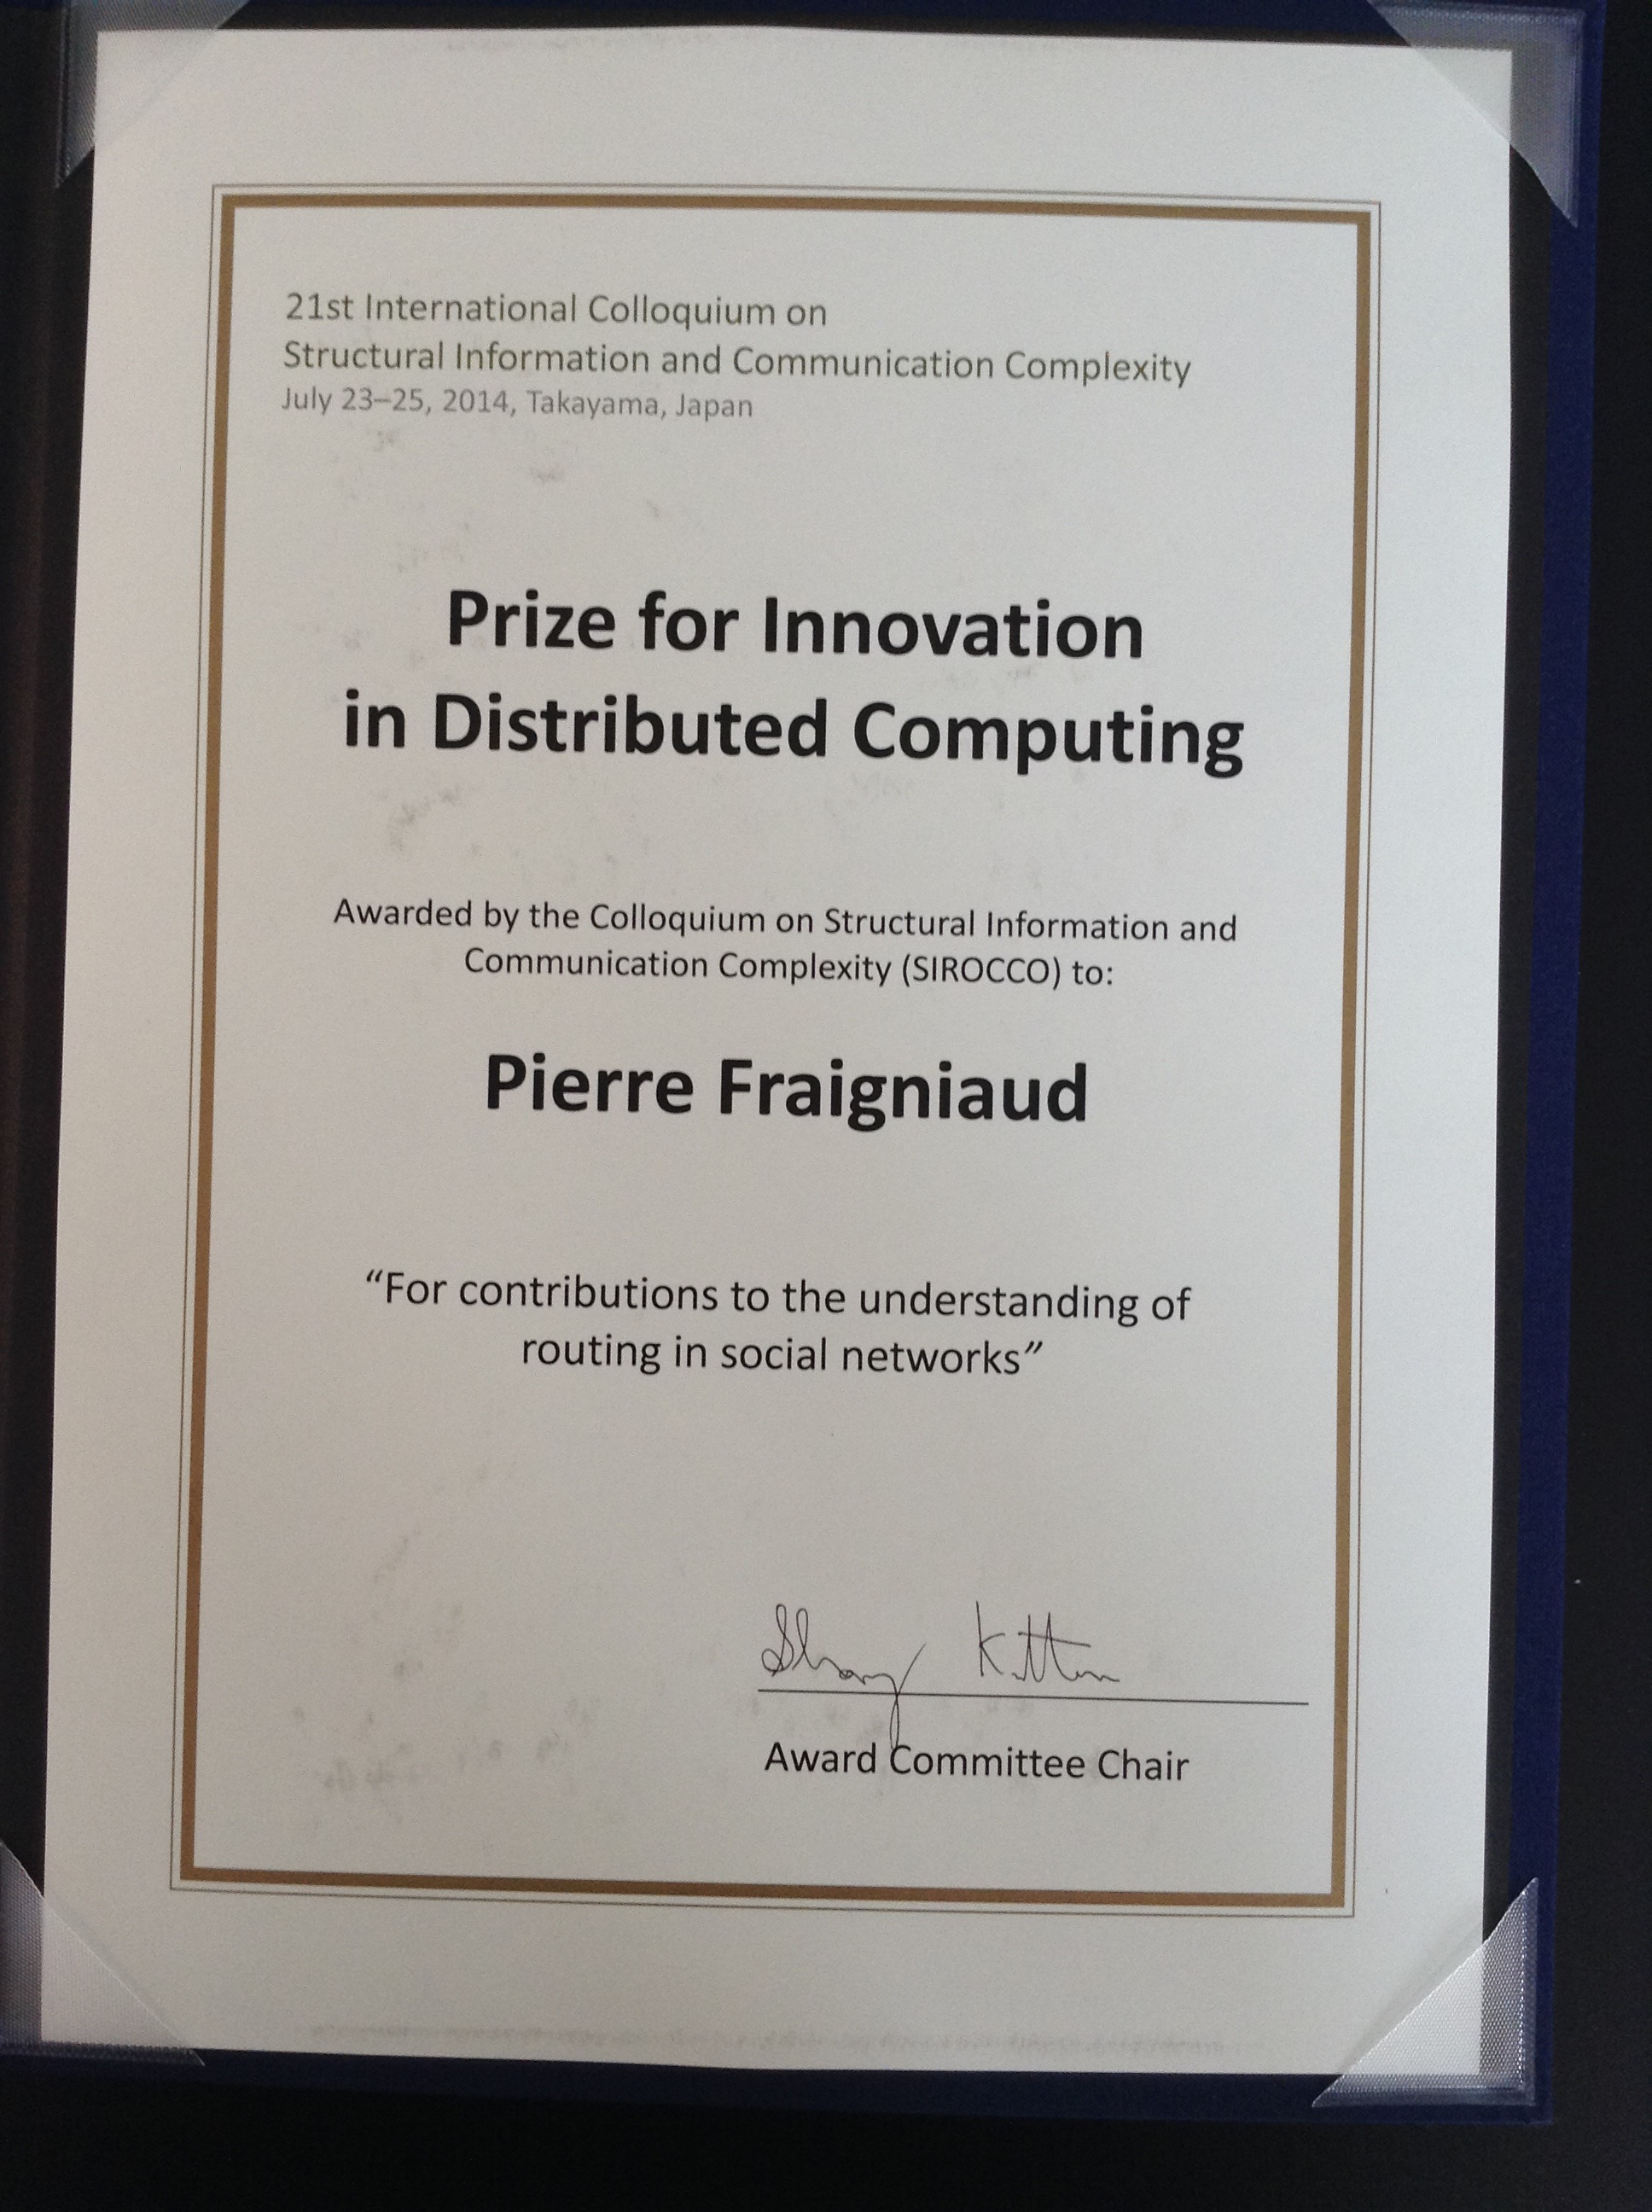 Prize for Innovation in Distributed Computing